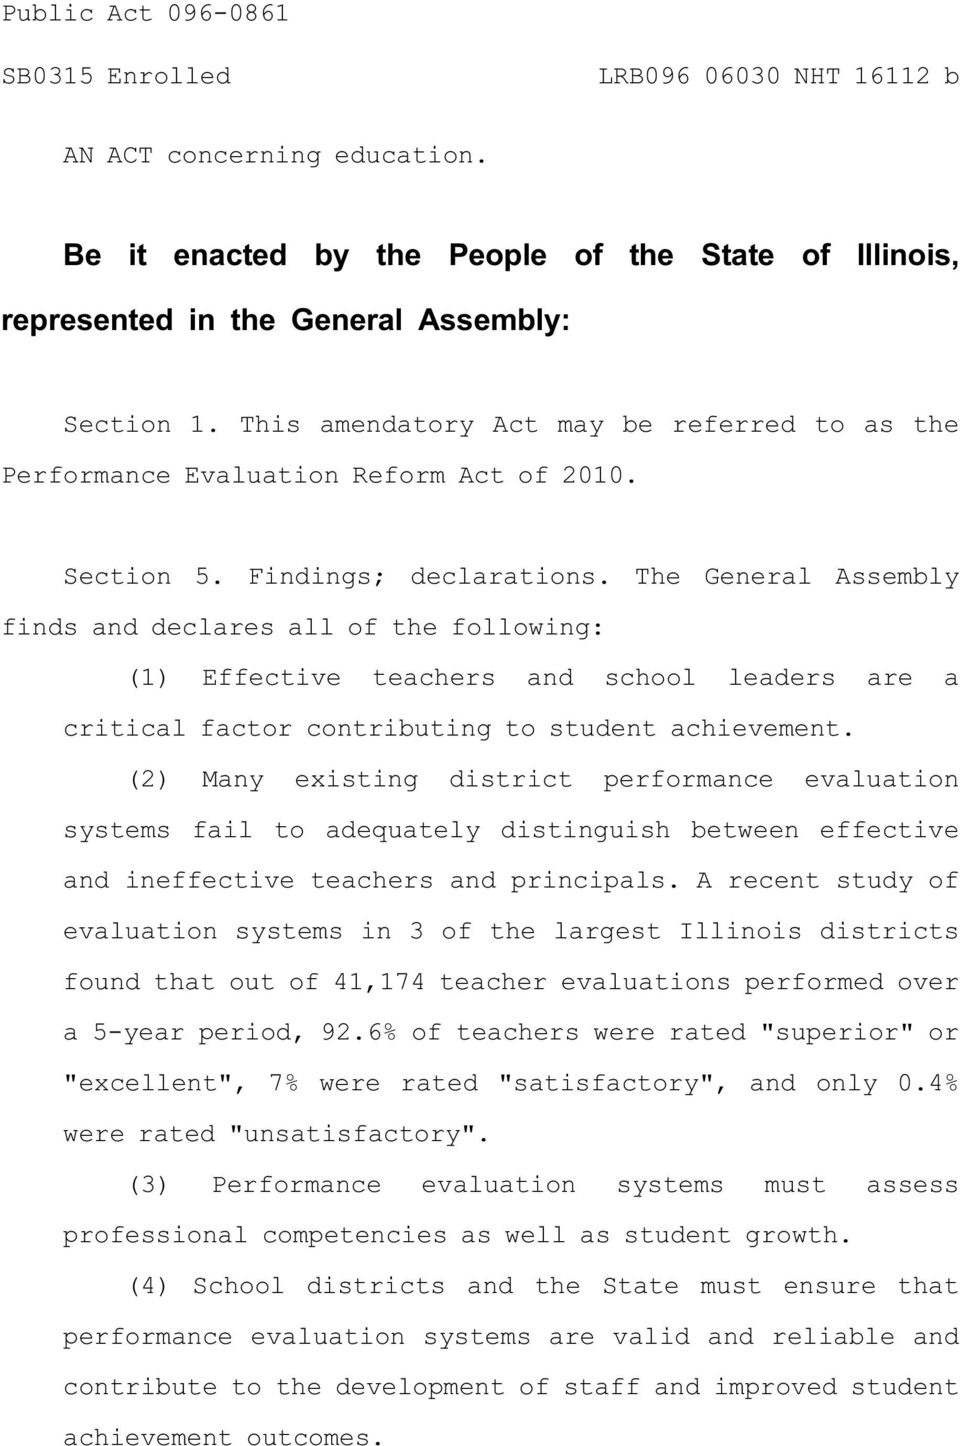 The General Assembly finds and declares all of the following: (1) Effective teachers and school leaders are a critical factor contributing to student achievement.